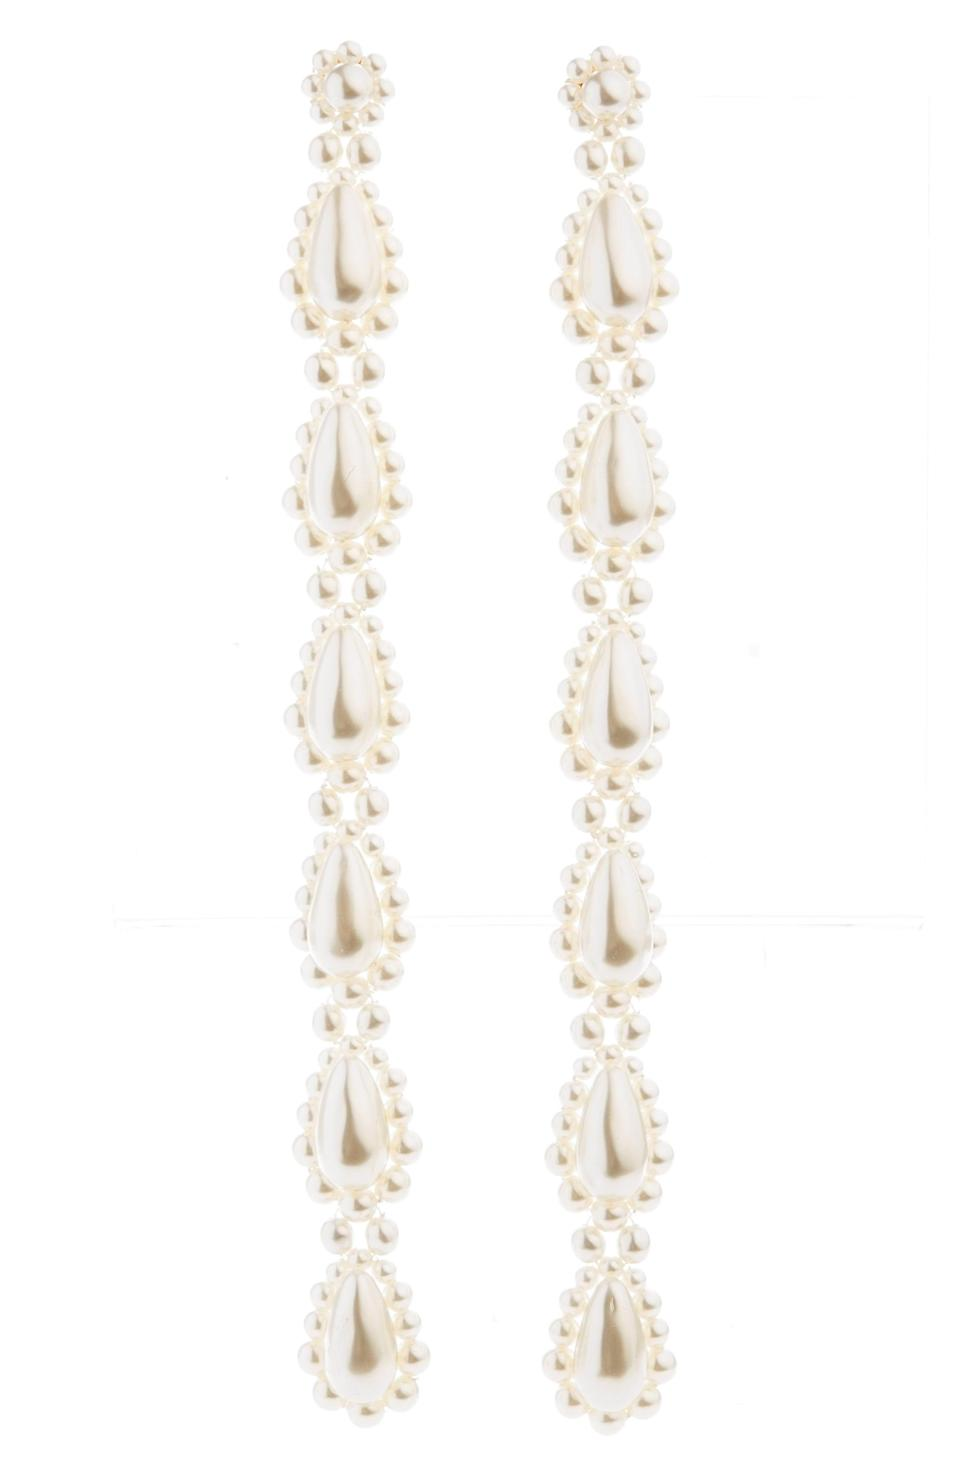 """<p><strong>Simone Rocha</strong></p><p>nordstrom.com</p><p><strong>$410.00</strong></p><p><a href=""""https://go.redirectingat.com?id=74968X1596630&url=https%3A%2F%2Fwww.nordstrom.com%2Fs%2Fsimone-rocha-long-faux-pearl-earrings%2F5740238&sref=https%3A%2F%2Fwww.harpersbazaar.com%2Ffashion%2Ffashion-week%2Fg34041265%2Fspring-2021-jewelry-trends%2F"""" rel=""""nofollow noopener"""" target=""""_blank"""" data-ylk=""""slk:Shop Now"""" class=""""link rapid-noclick-resp"""">Shop Now</a></p><p>White haute.</p>"""